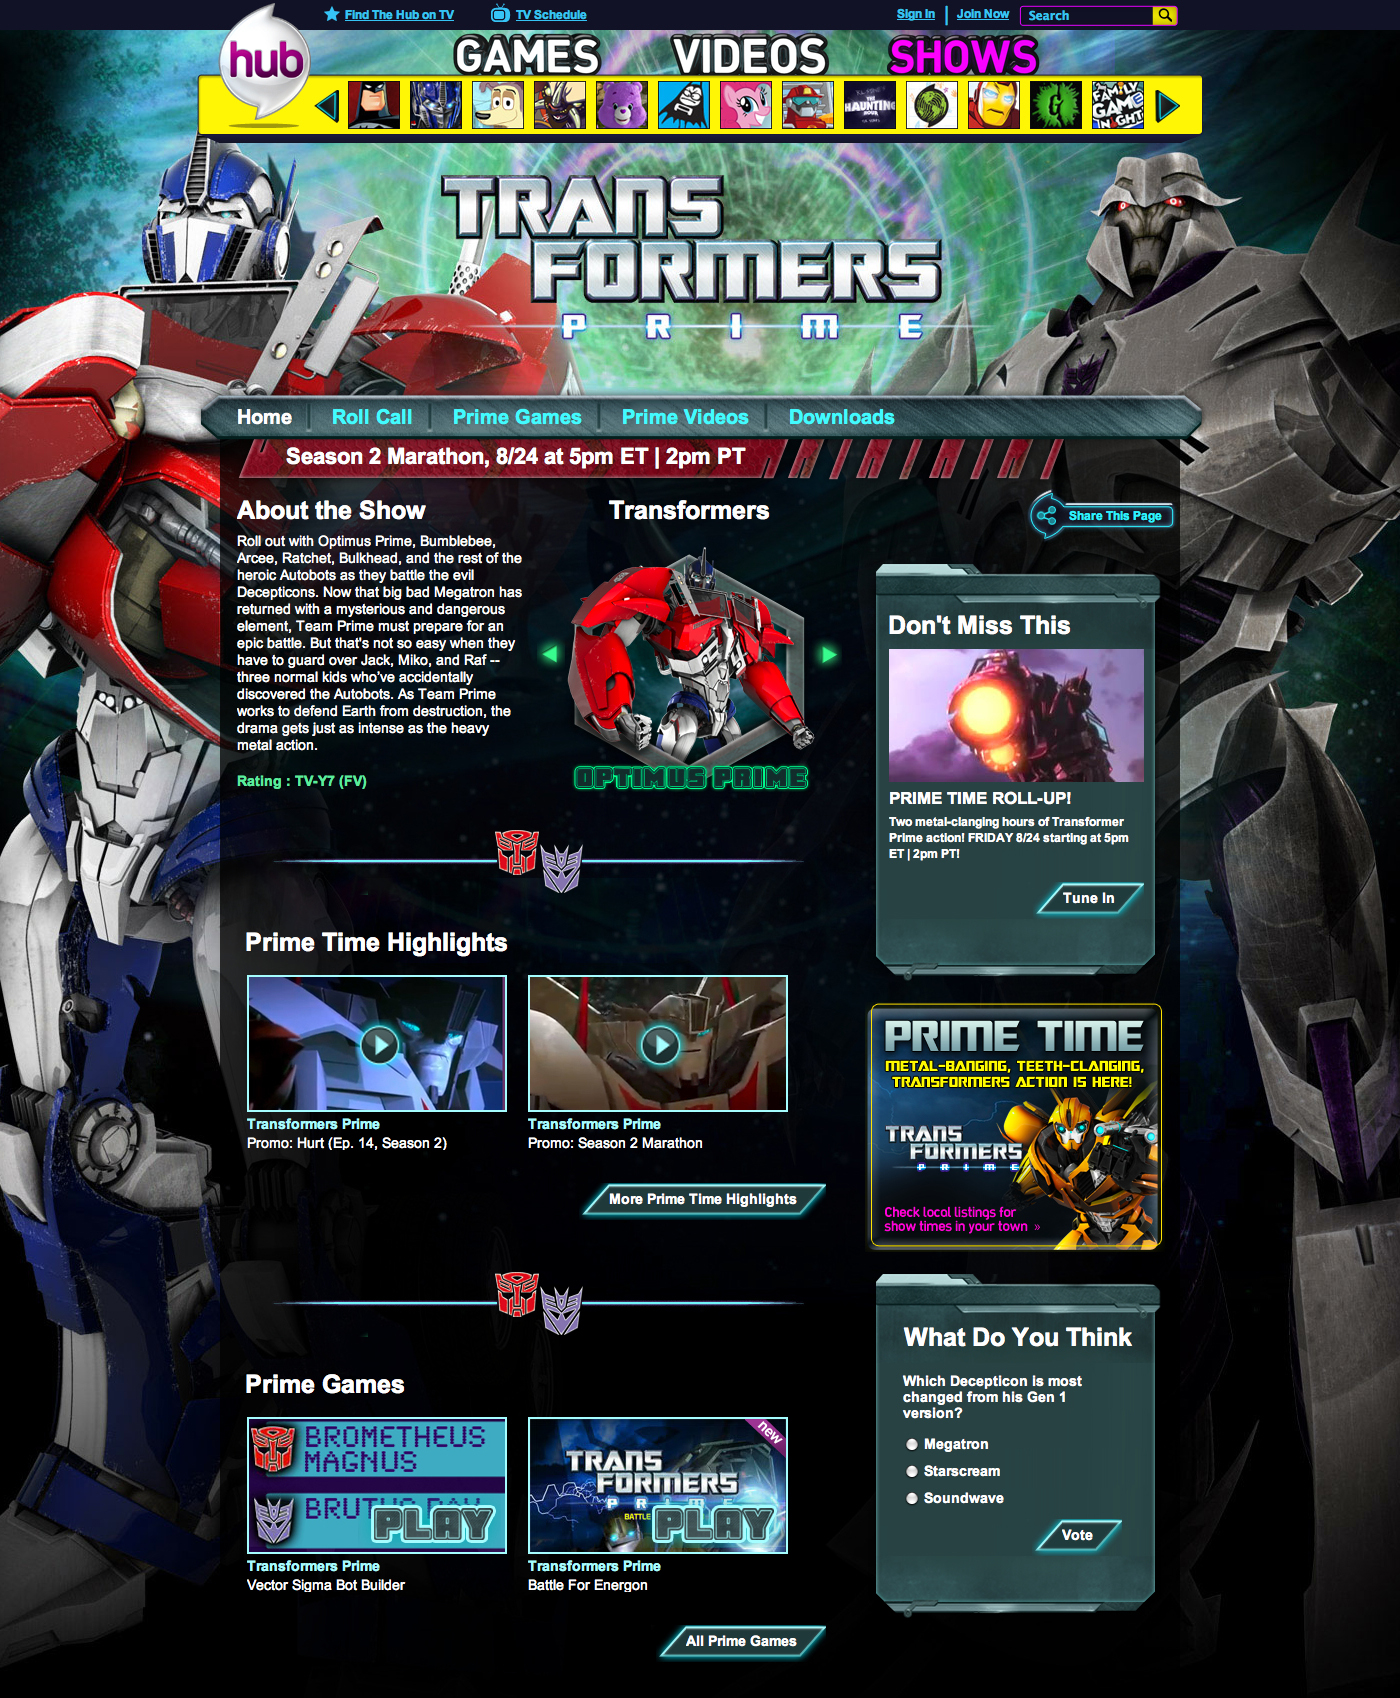 hubworld-transformers-showpage.jpg